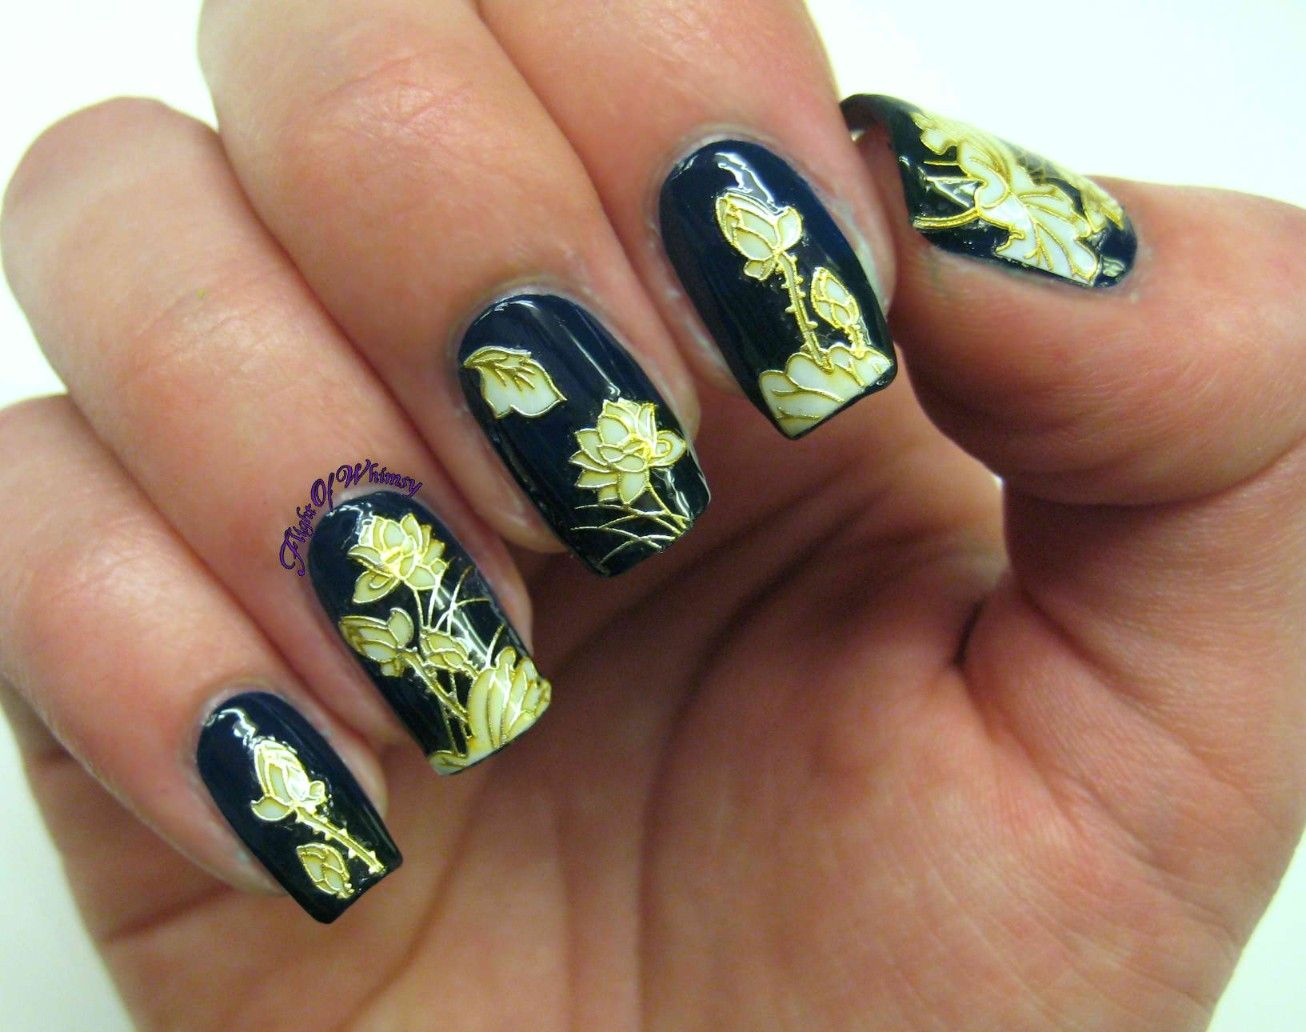 108-classy-nail-design-stickers | Nail Ideas and Tutorials ...